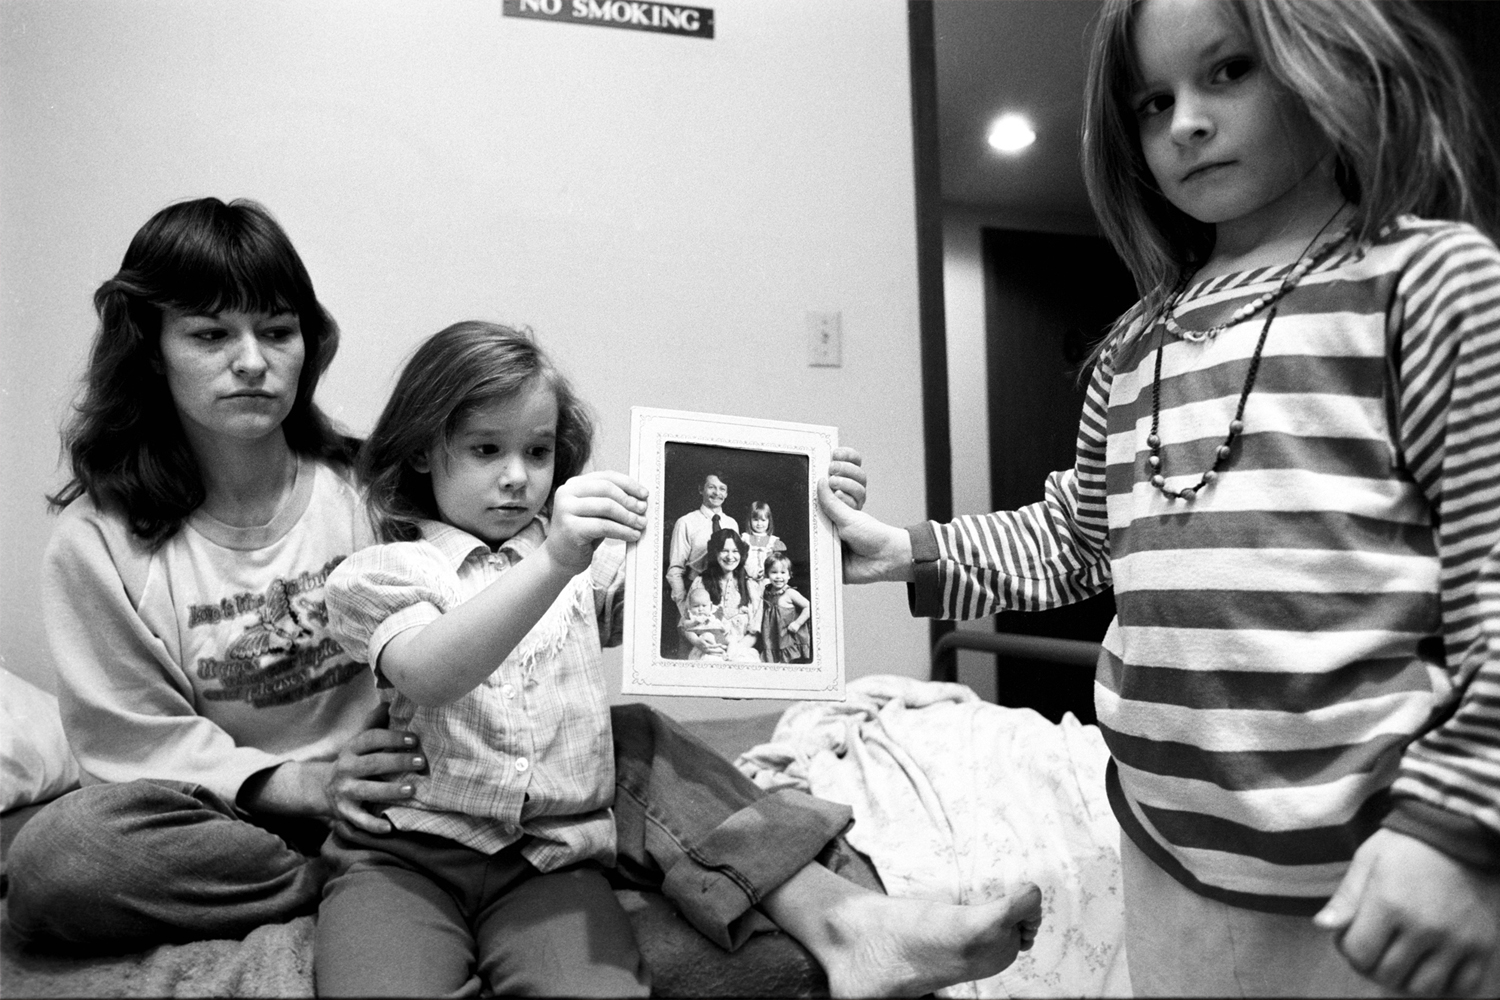 Mary's daughters show the face of the man they called Daddy– the man who threatened to kill their mother.